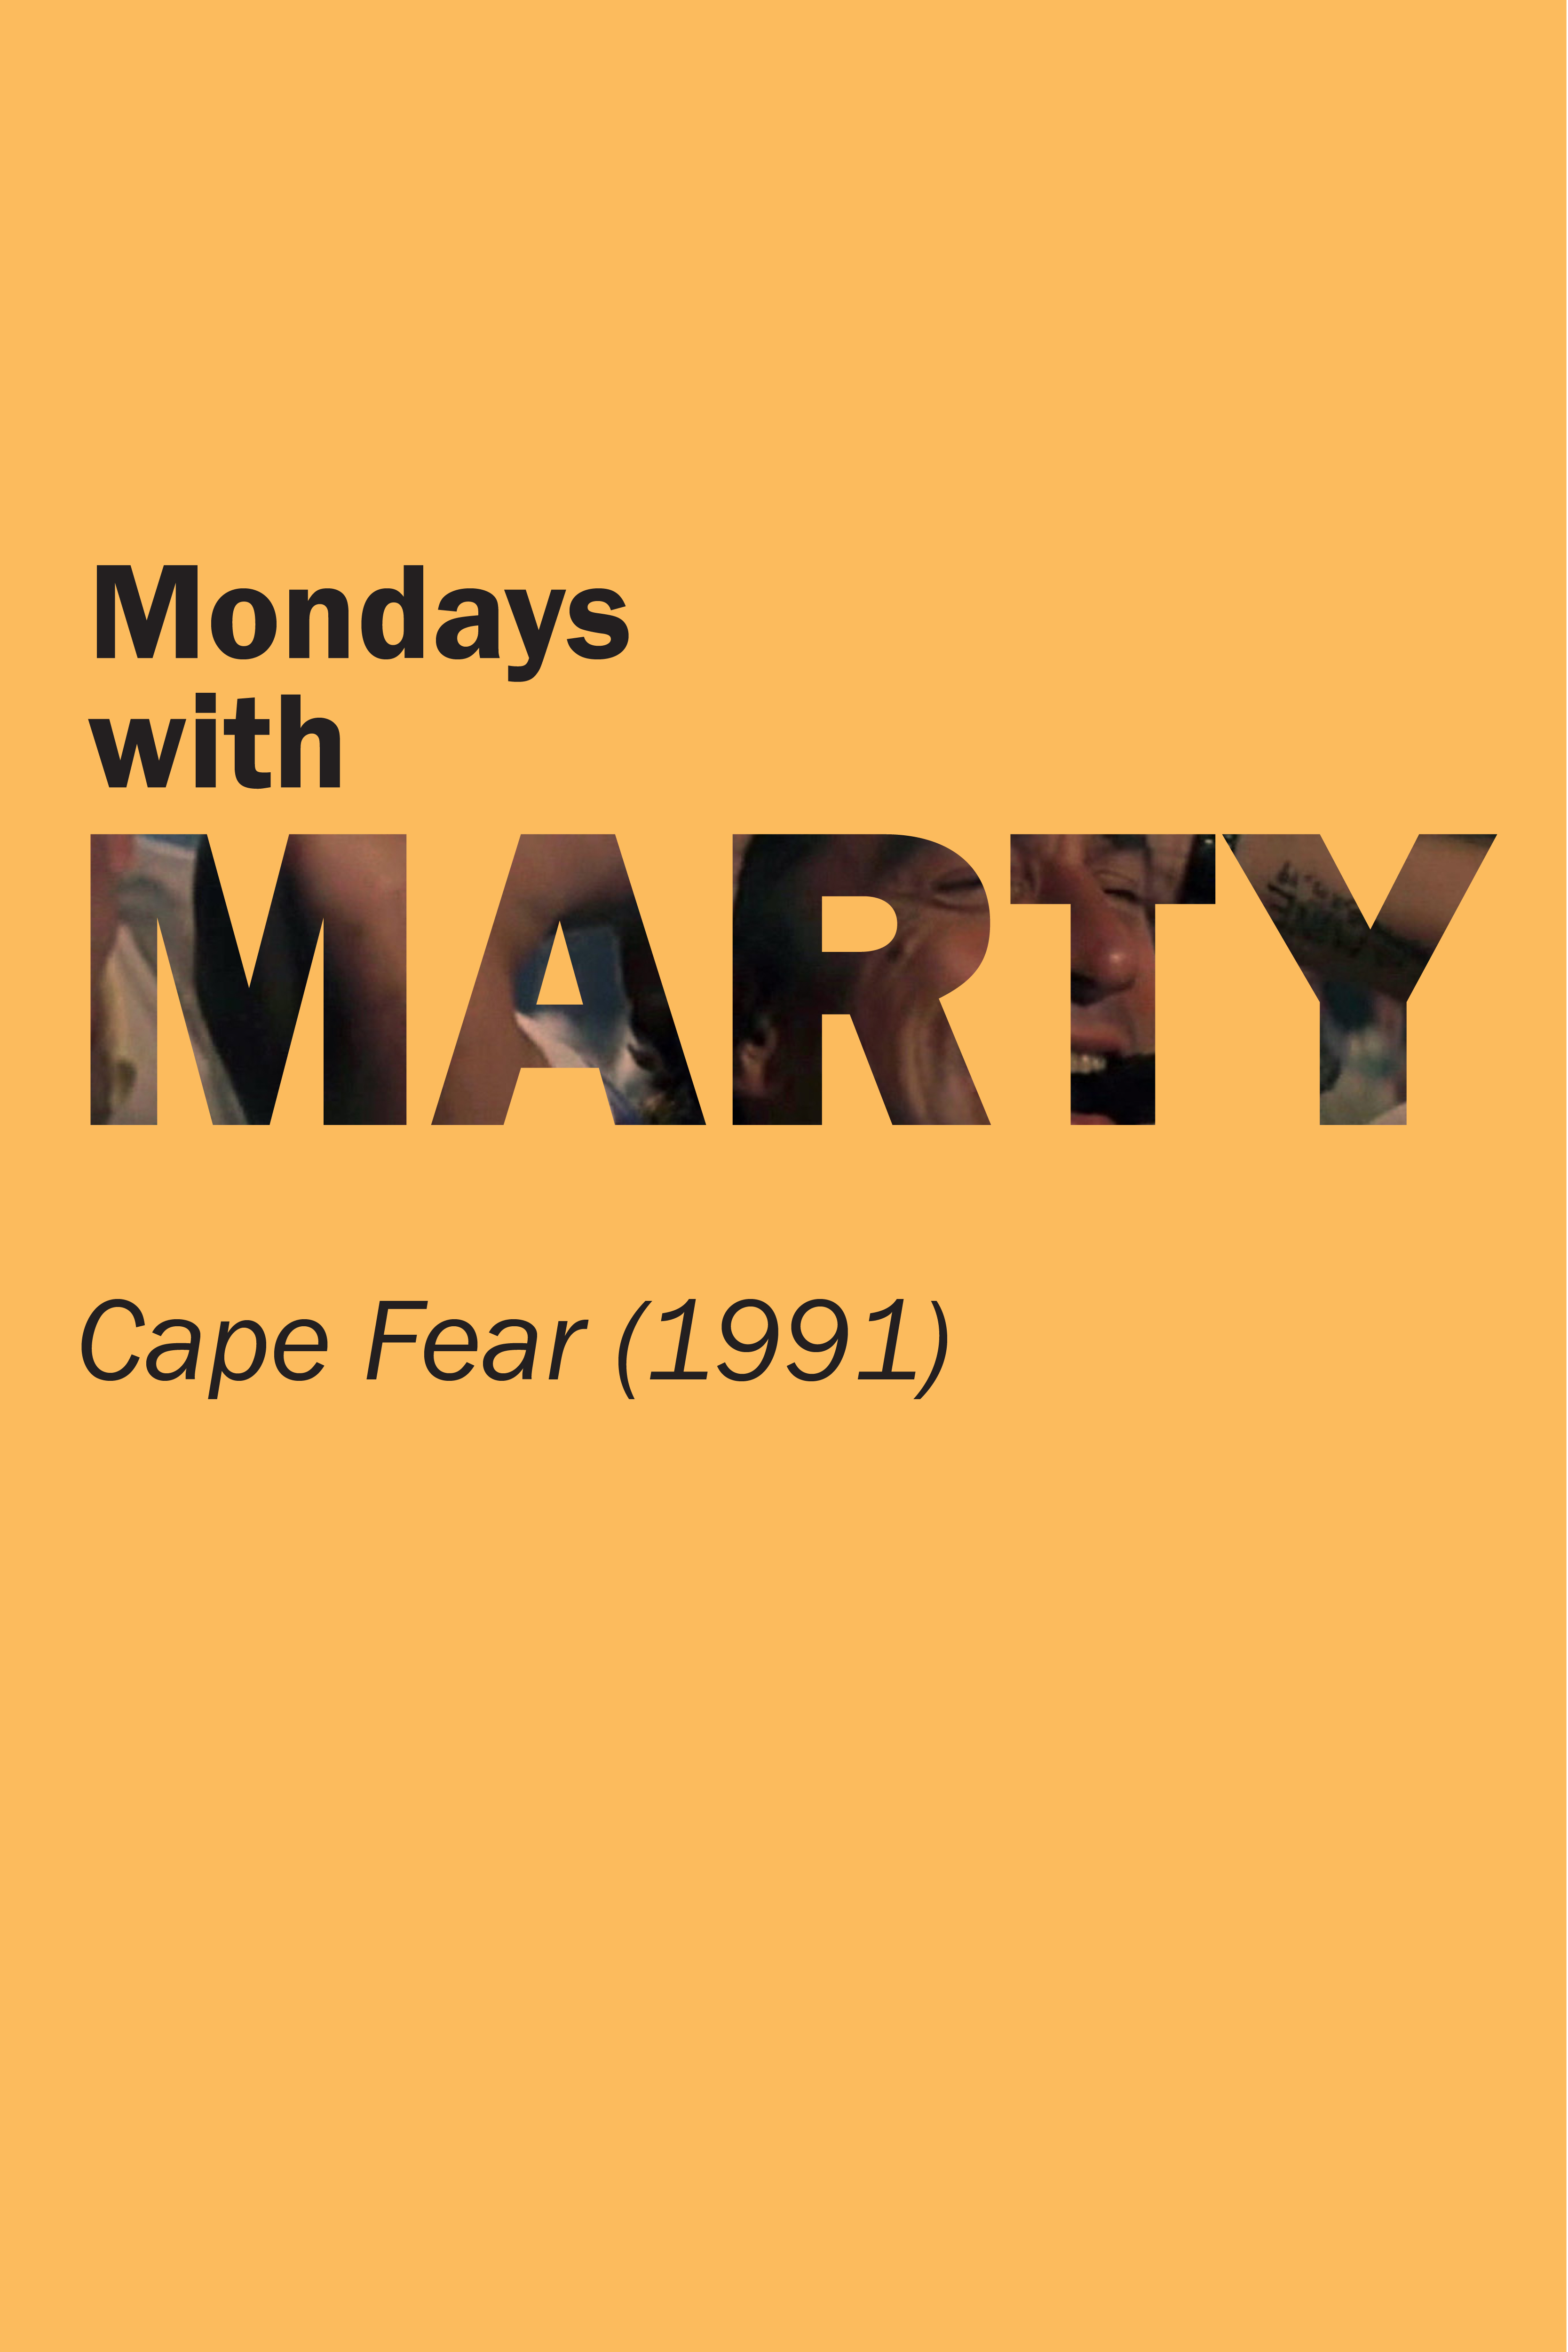 Poster for Cape Fear (1991) 30th anniversary